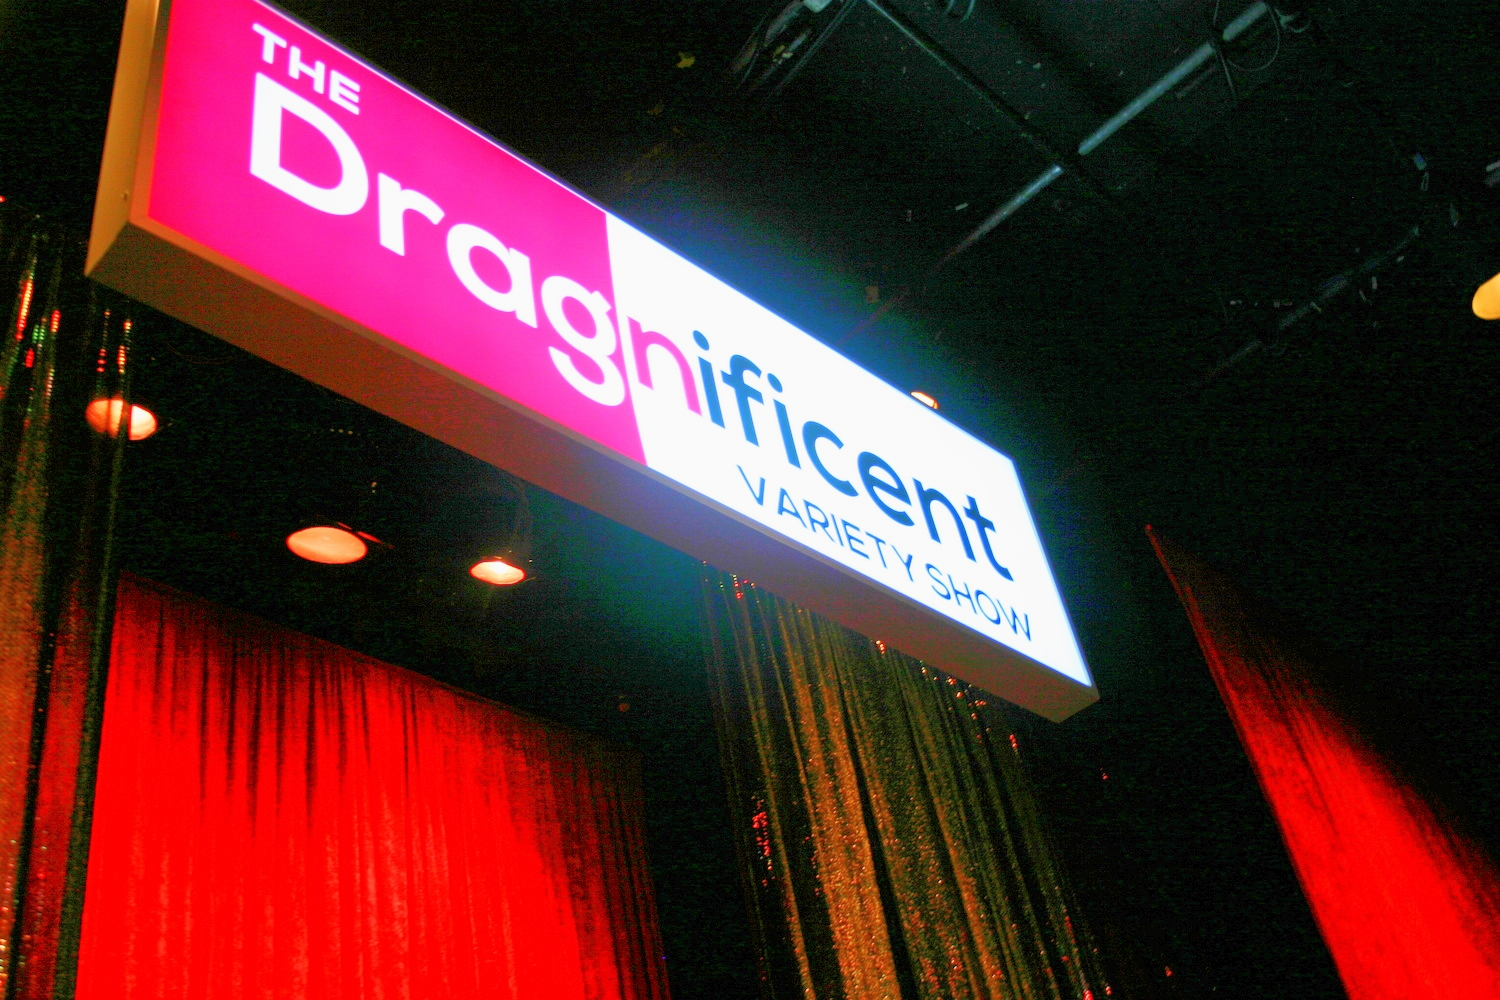 DragNificent Variety Show Opening Weekend ( March 12, 2015)